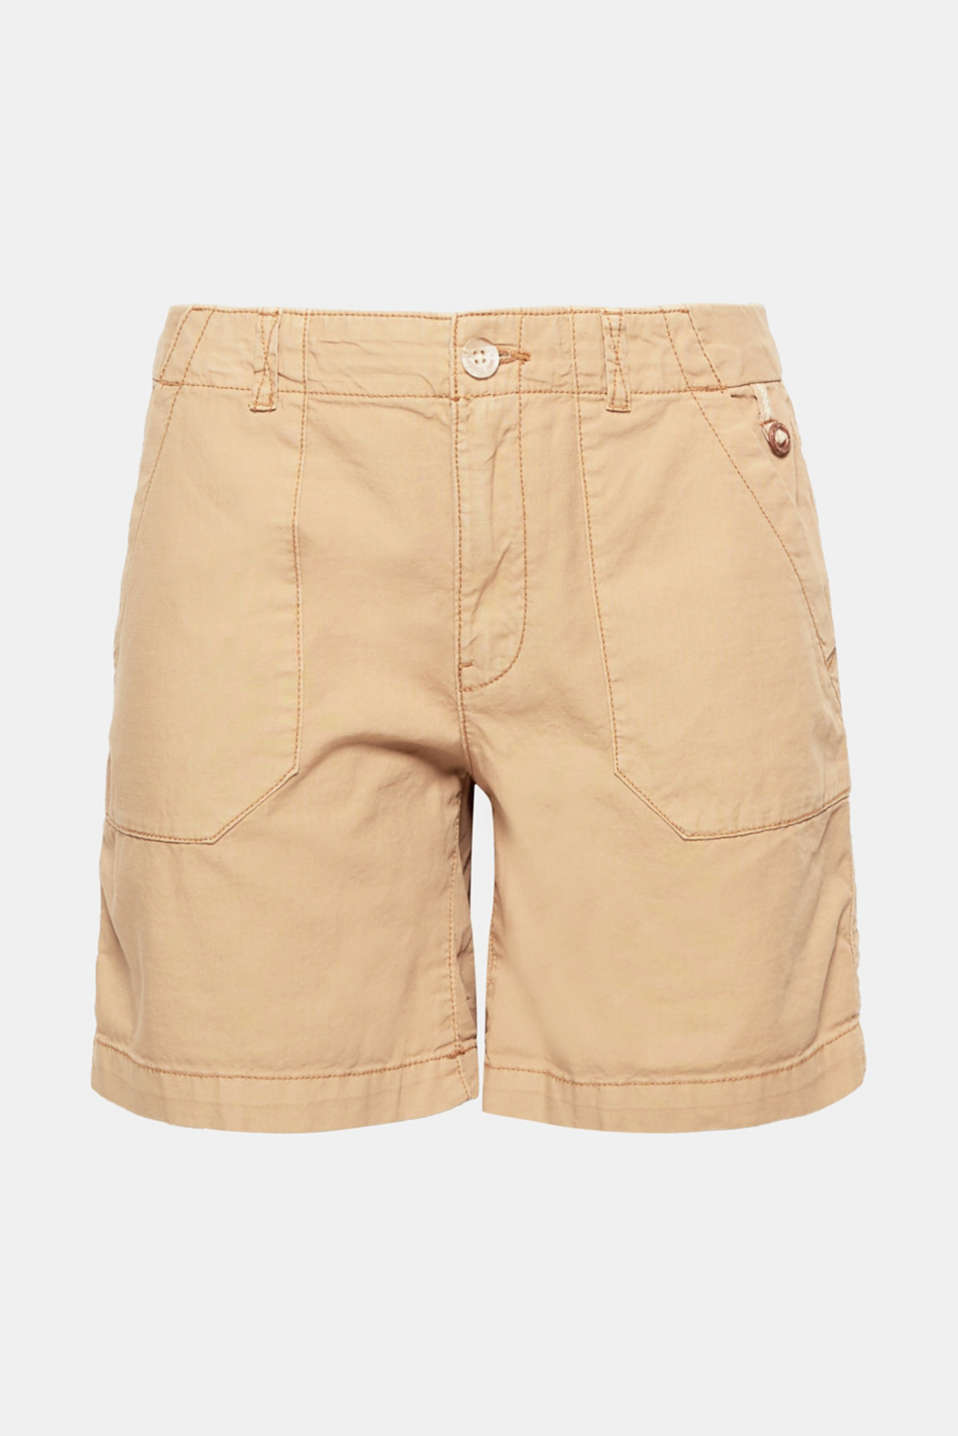 These shorts are a must-have basic for summer in pure cotton with utility style patch pockets.